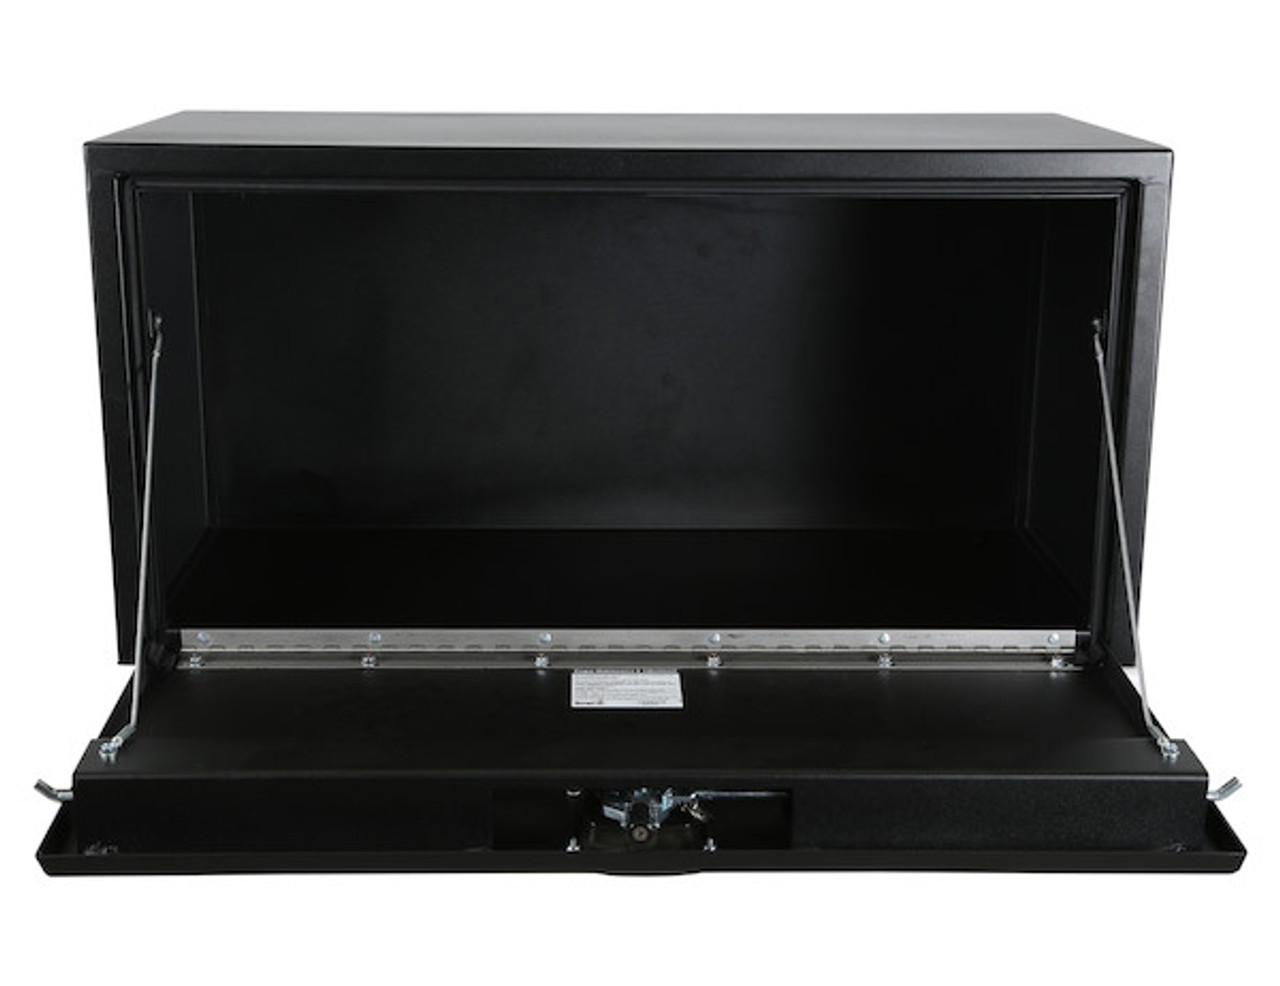 """1734500 BUYERS PRODUCTS TEXTURED MATTE BLACK STEEL UNDERBODY TRUCK TOOLBOX WITH 3-POINT LATCH 24""""Hx24""""Dx24""""W  Picture # 5"""